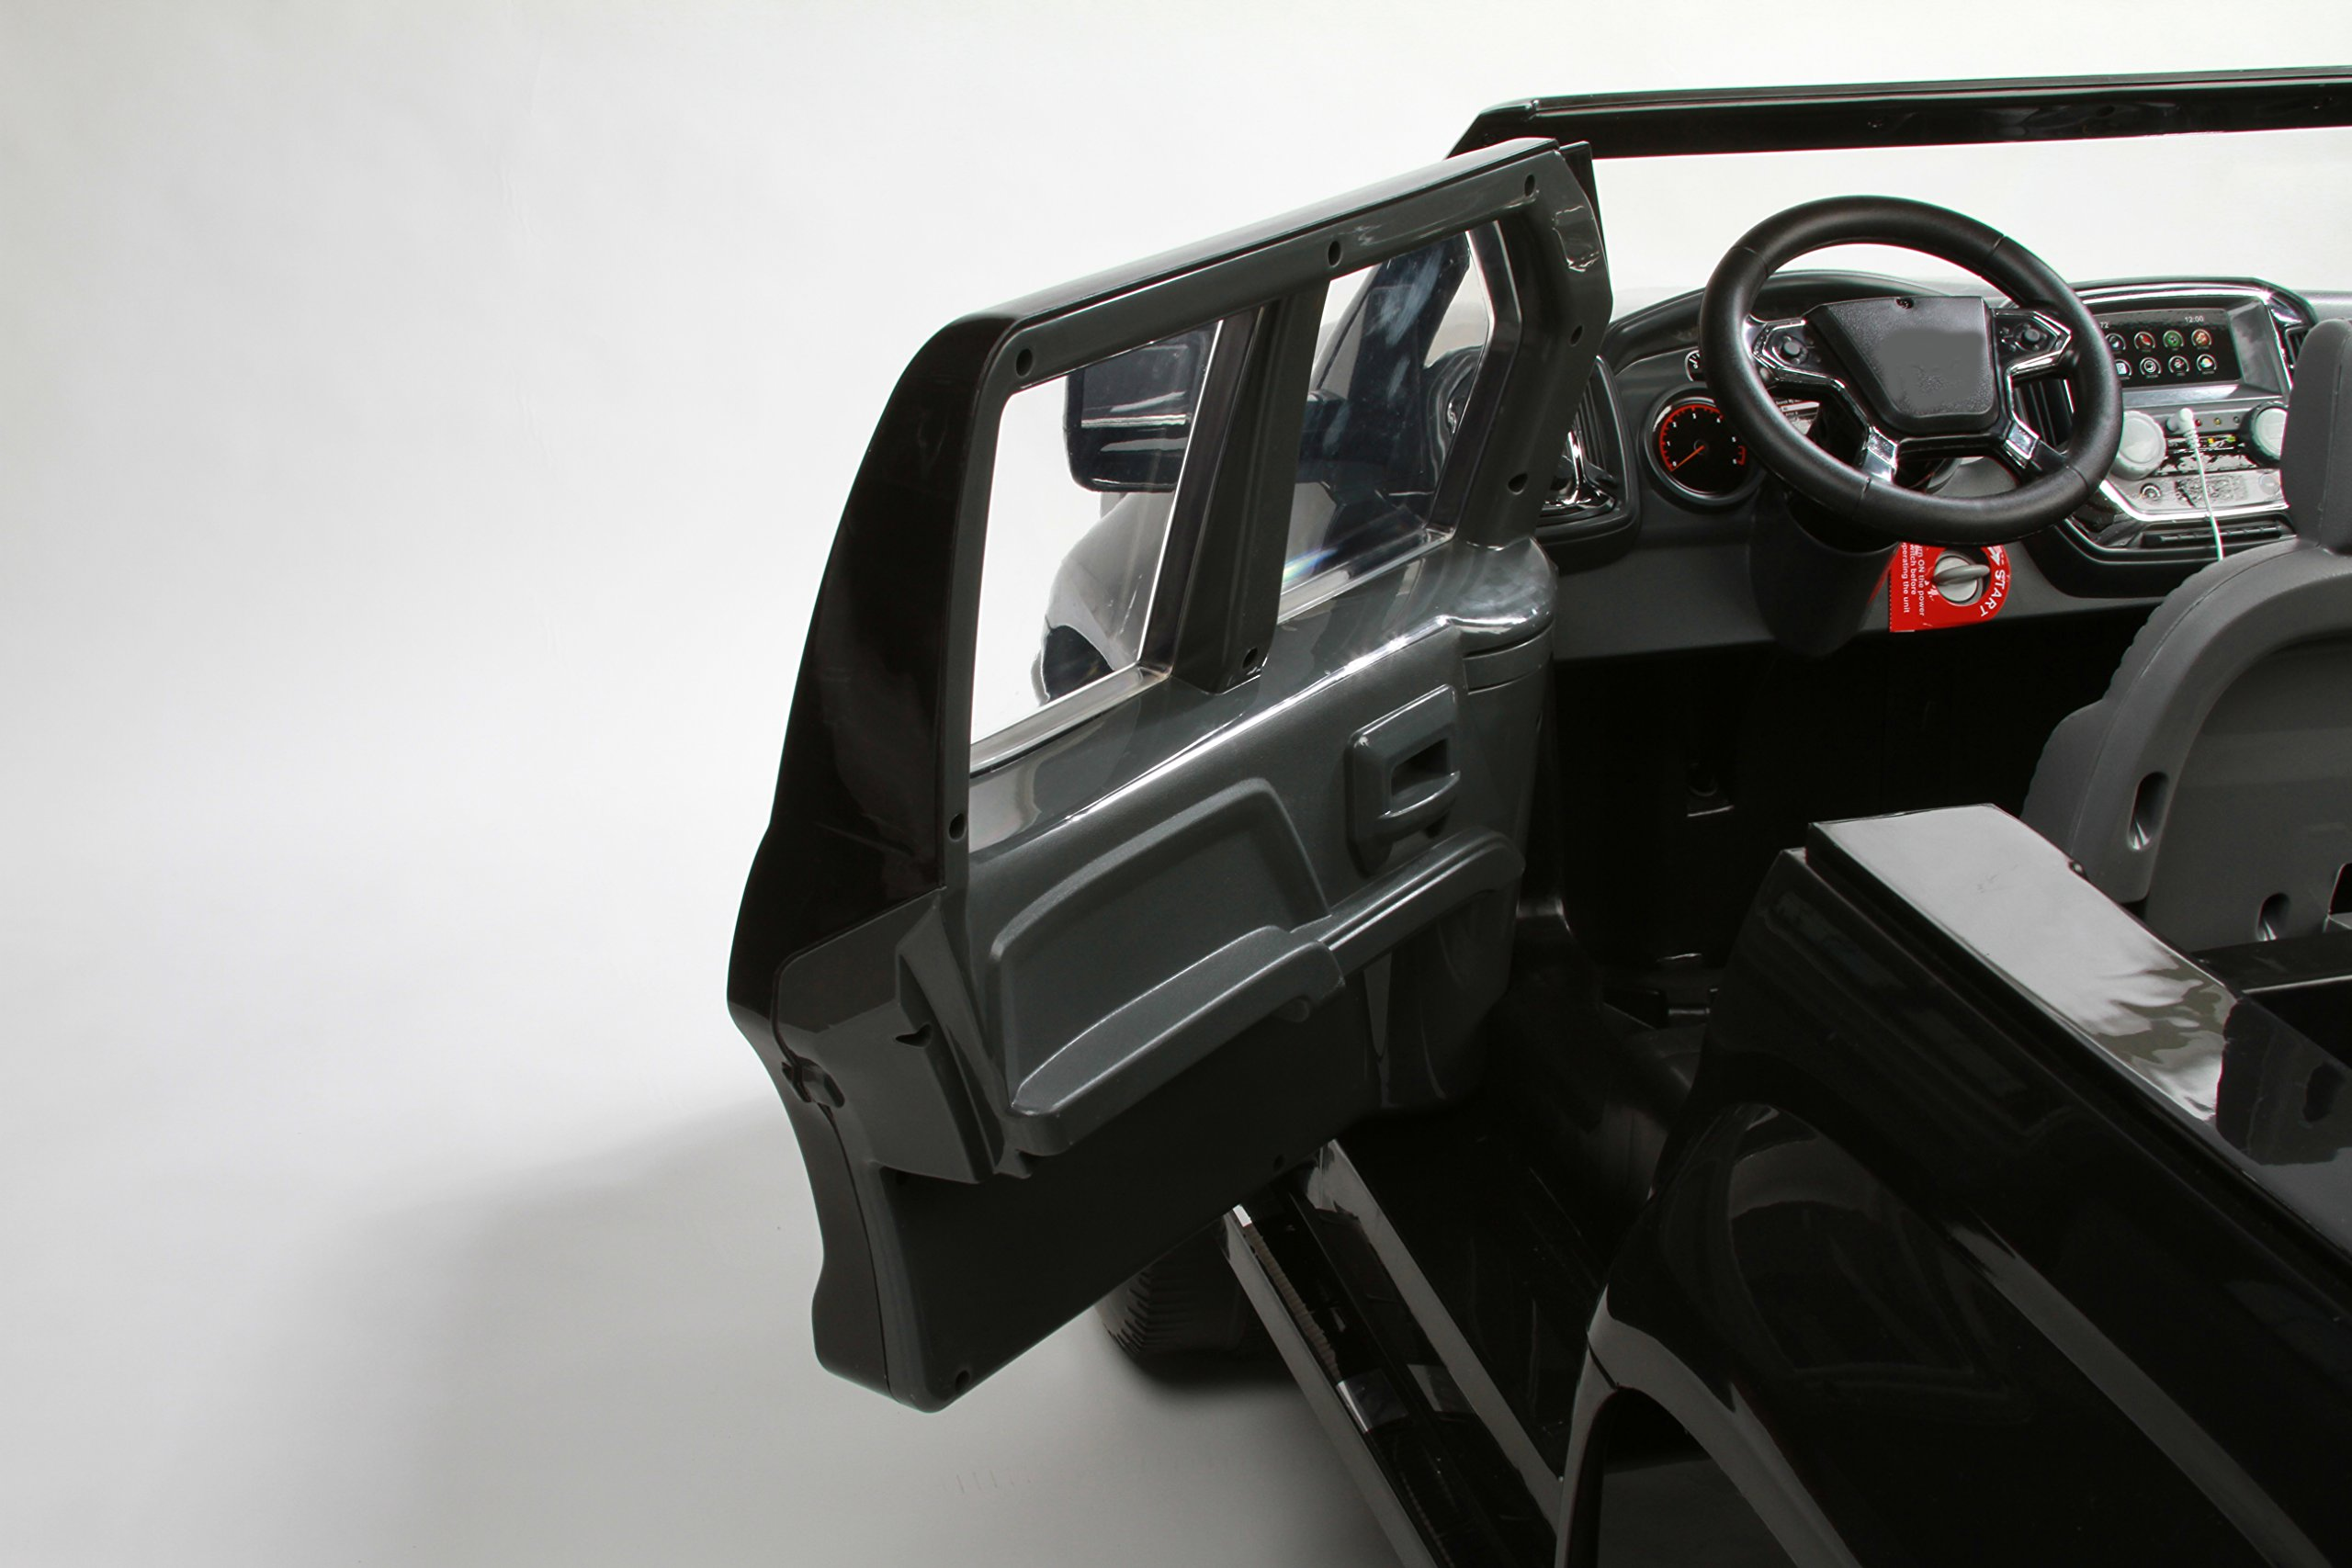 Rollplay GMC Sierra Denali 12-Volt Battery-Powered Ride-On, Black by Rollplay (Image #8)